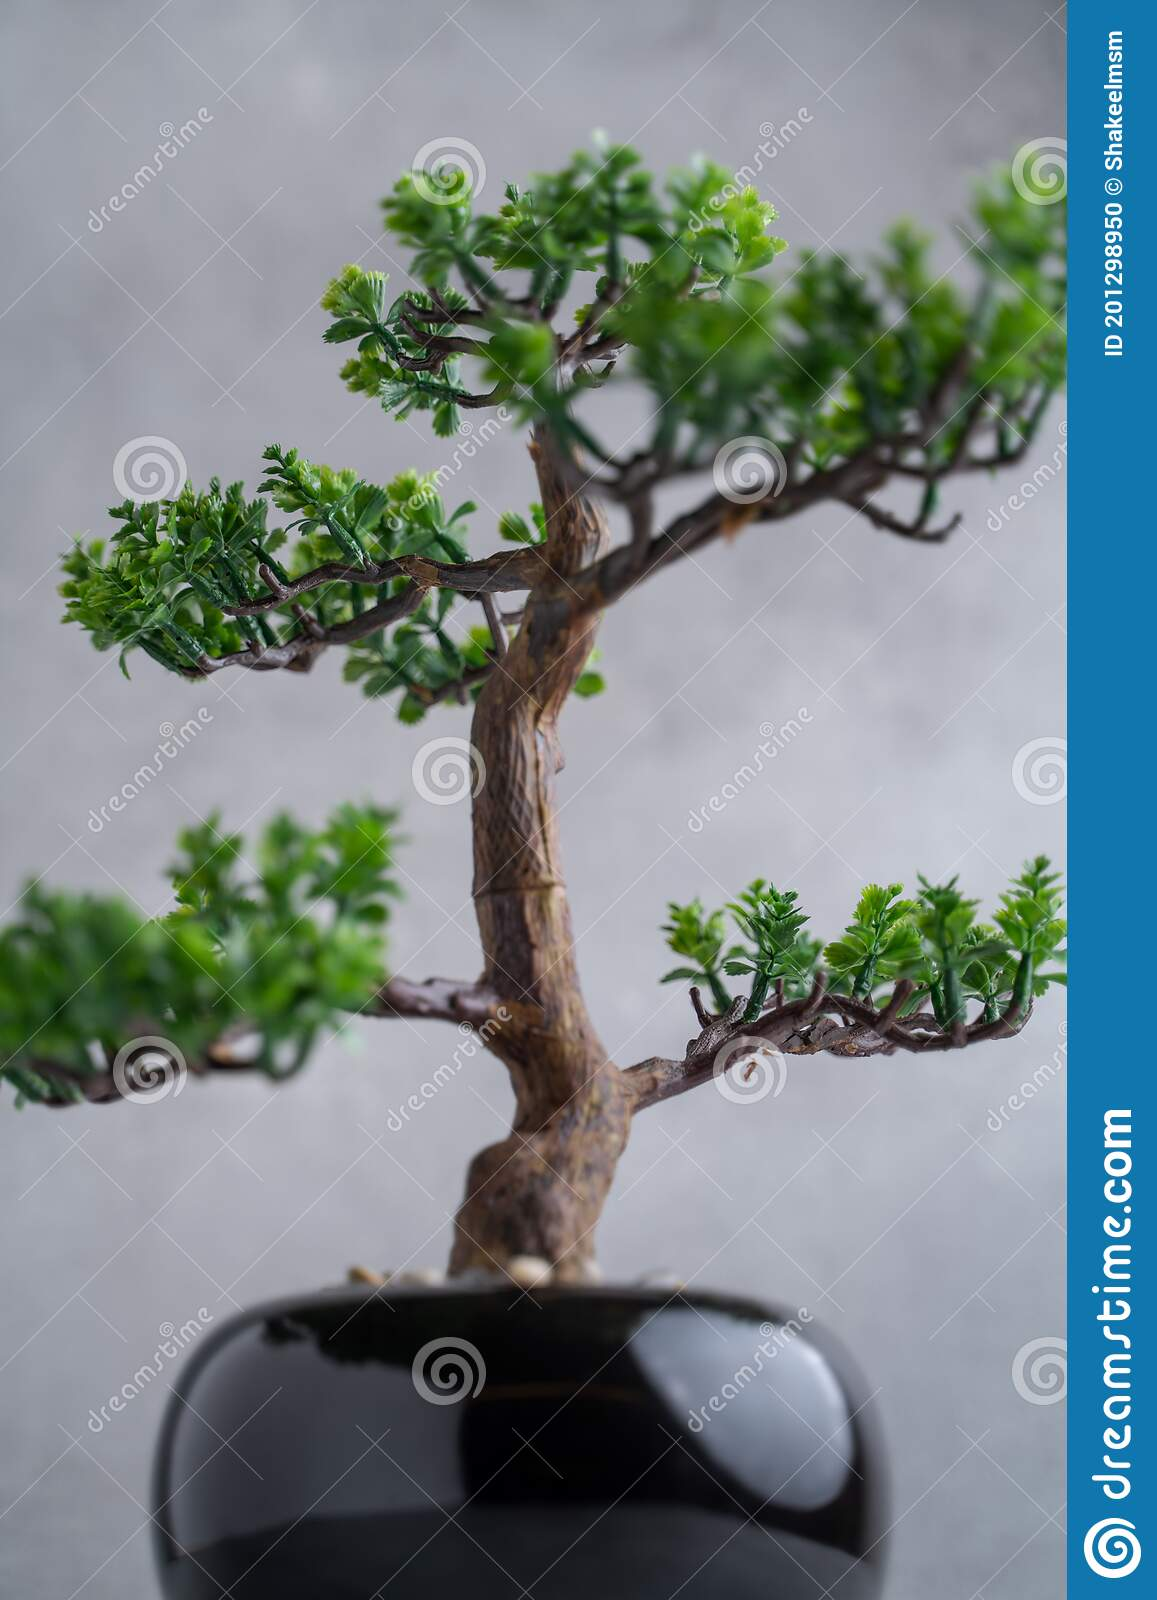 Plastic Bonsai Tree Artificial With A Small Pot On A Gray Background Stock Photo Image Of Decoration Artificial 201298950